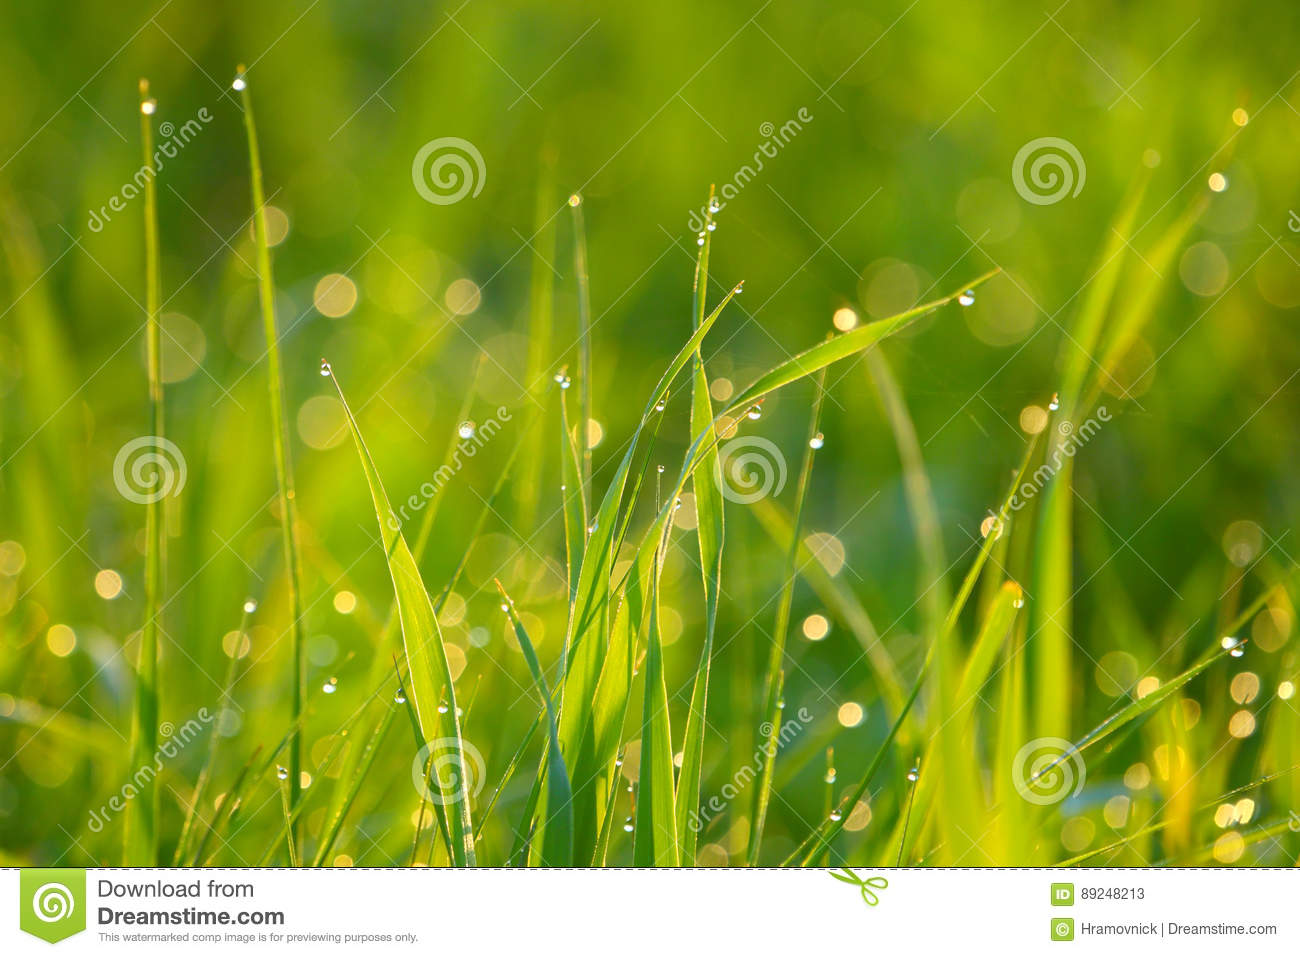 Background of green grass with drops of dew.